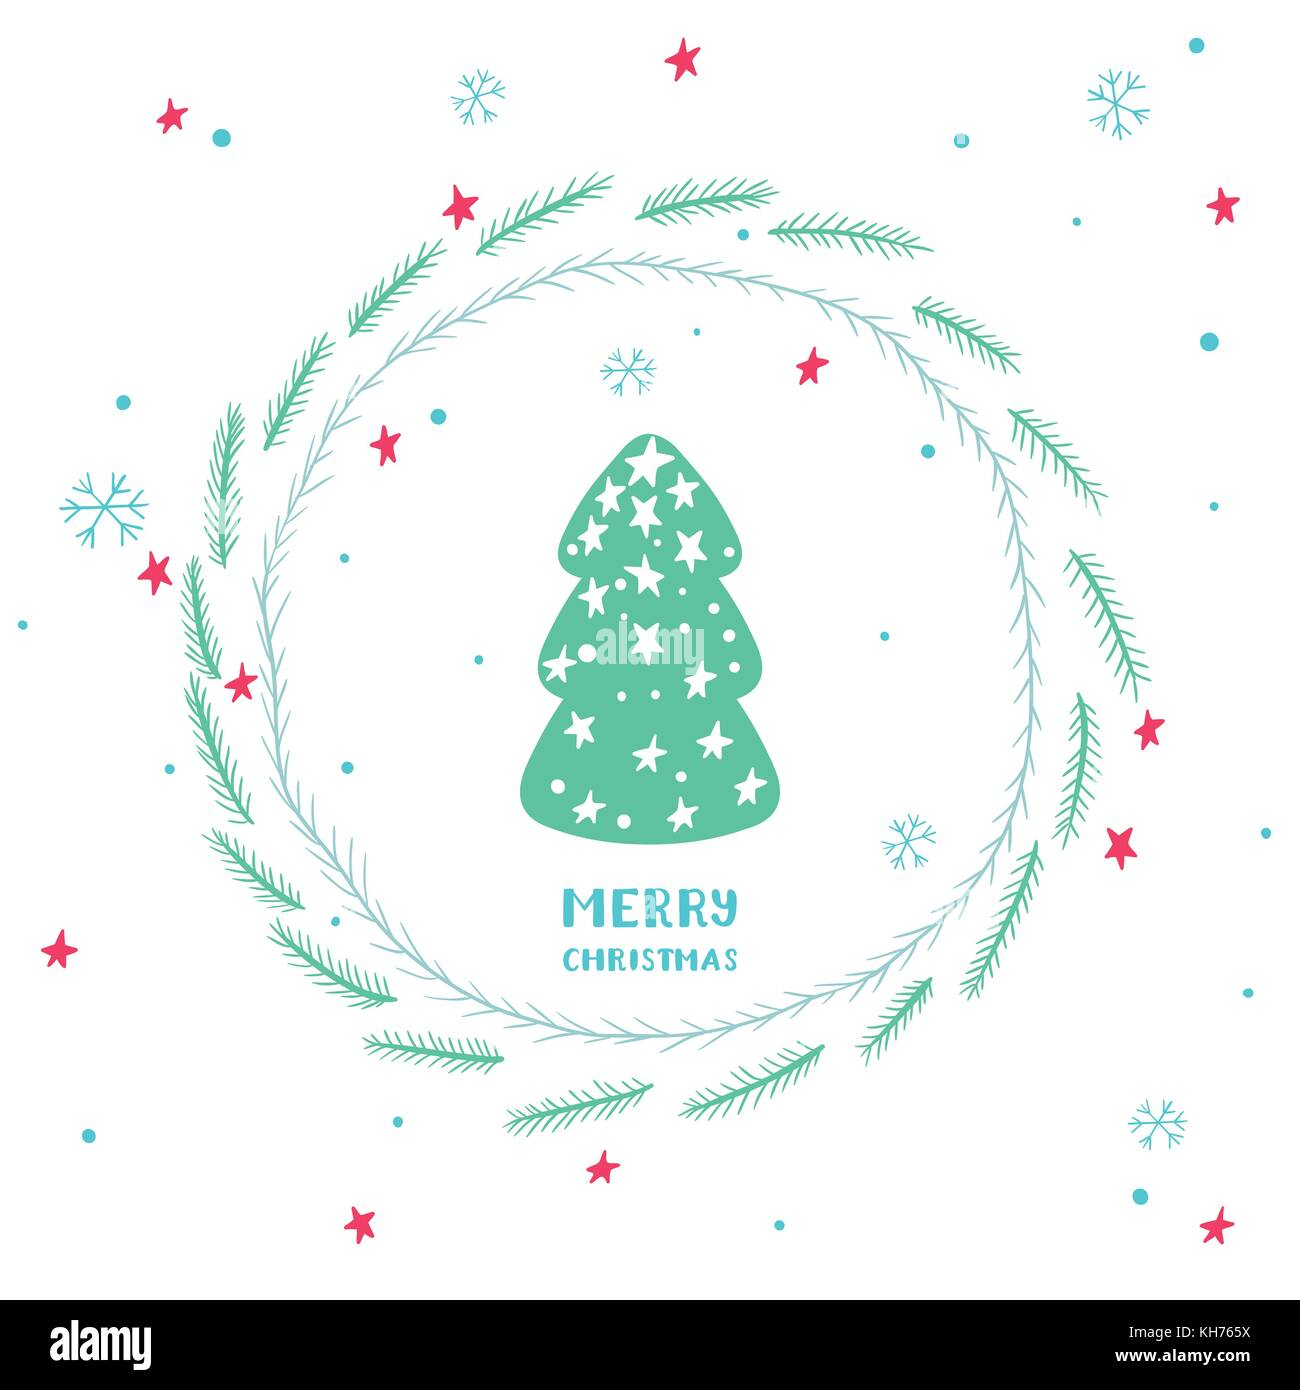 Cute Christmas card with christmas tree, round frame of spruce branches, stars and snowflakes - Stock Vector